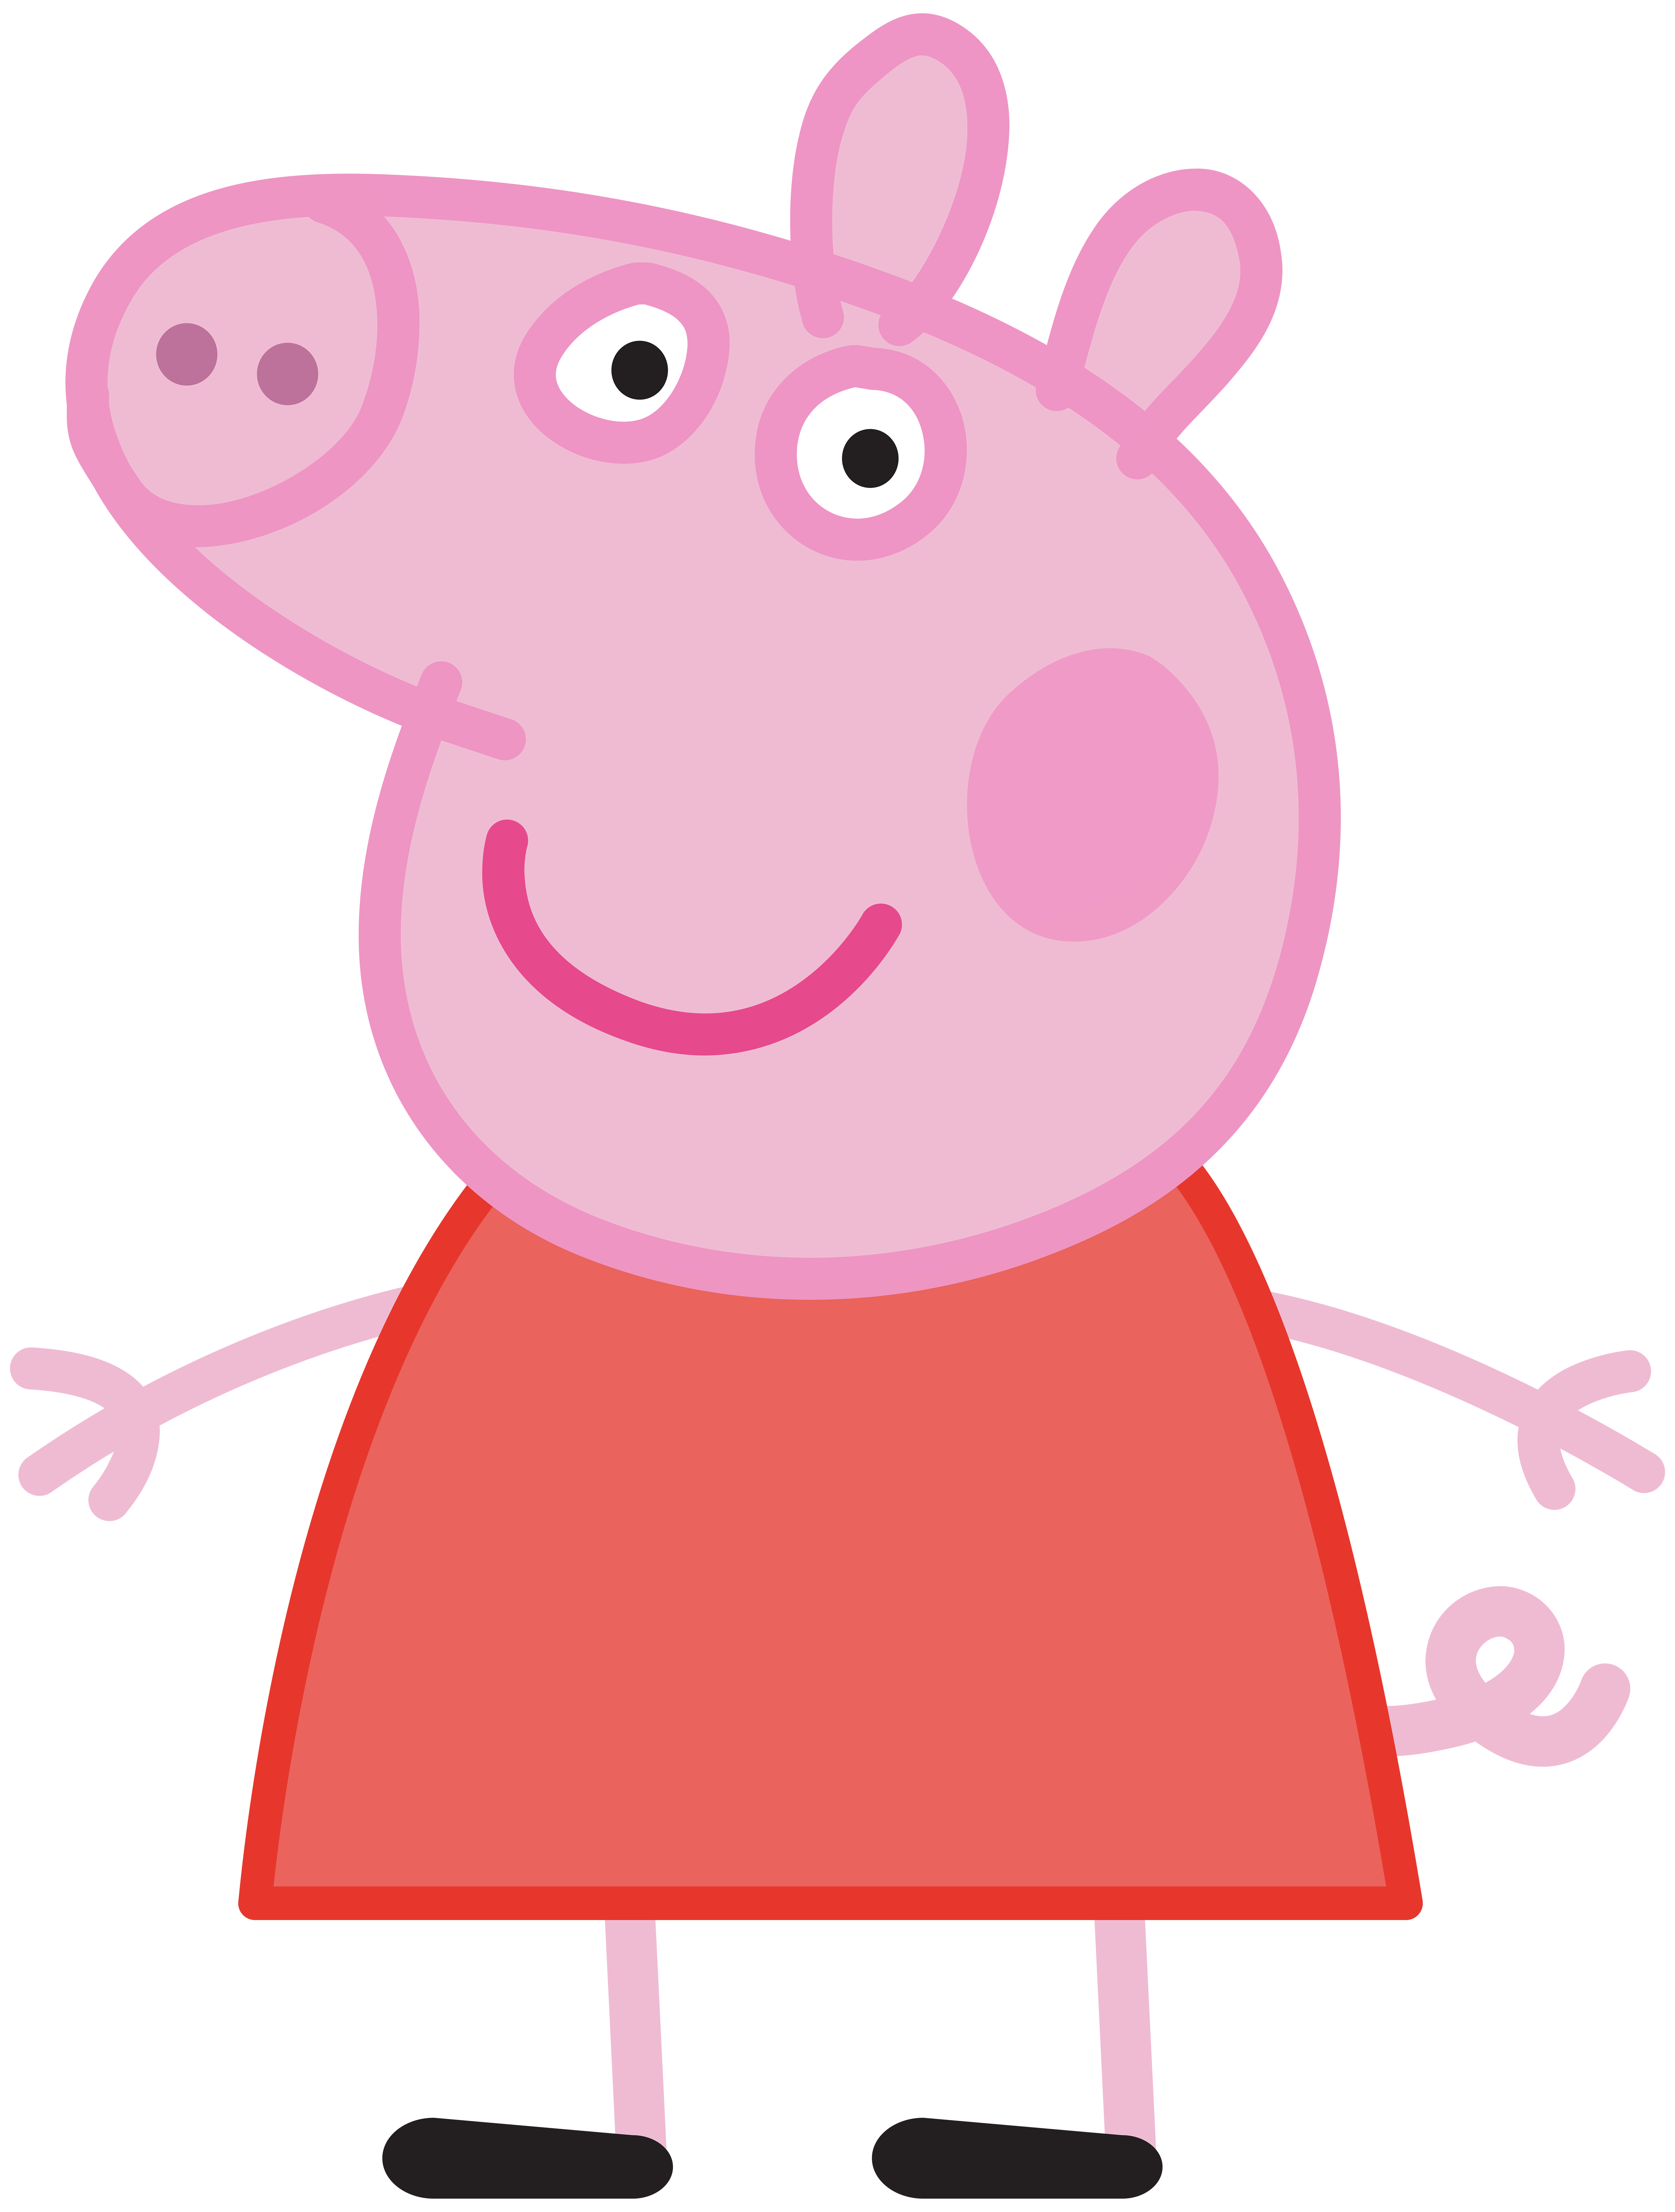 Transparent png image gallery. House clipart peppa pig